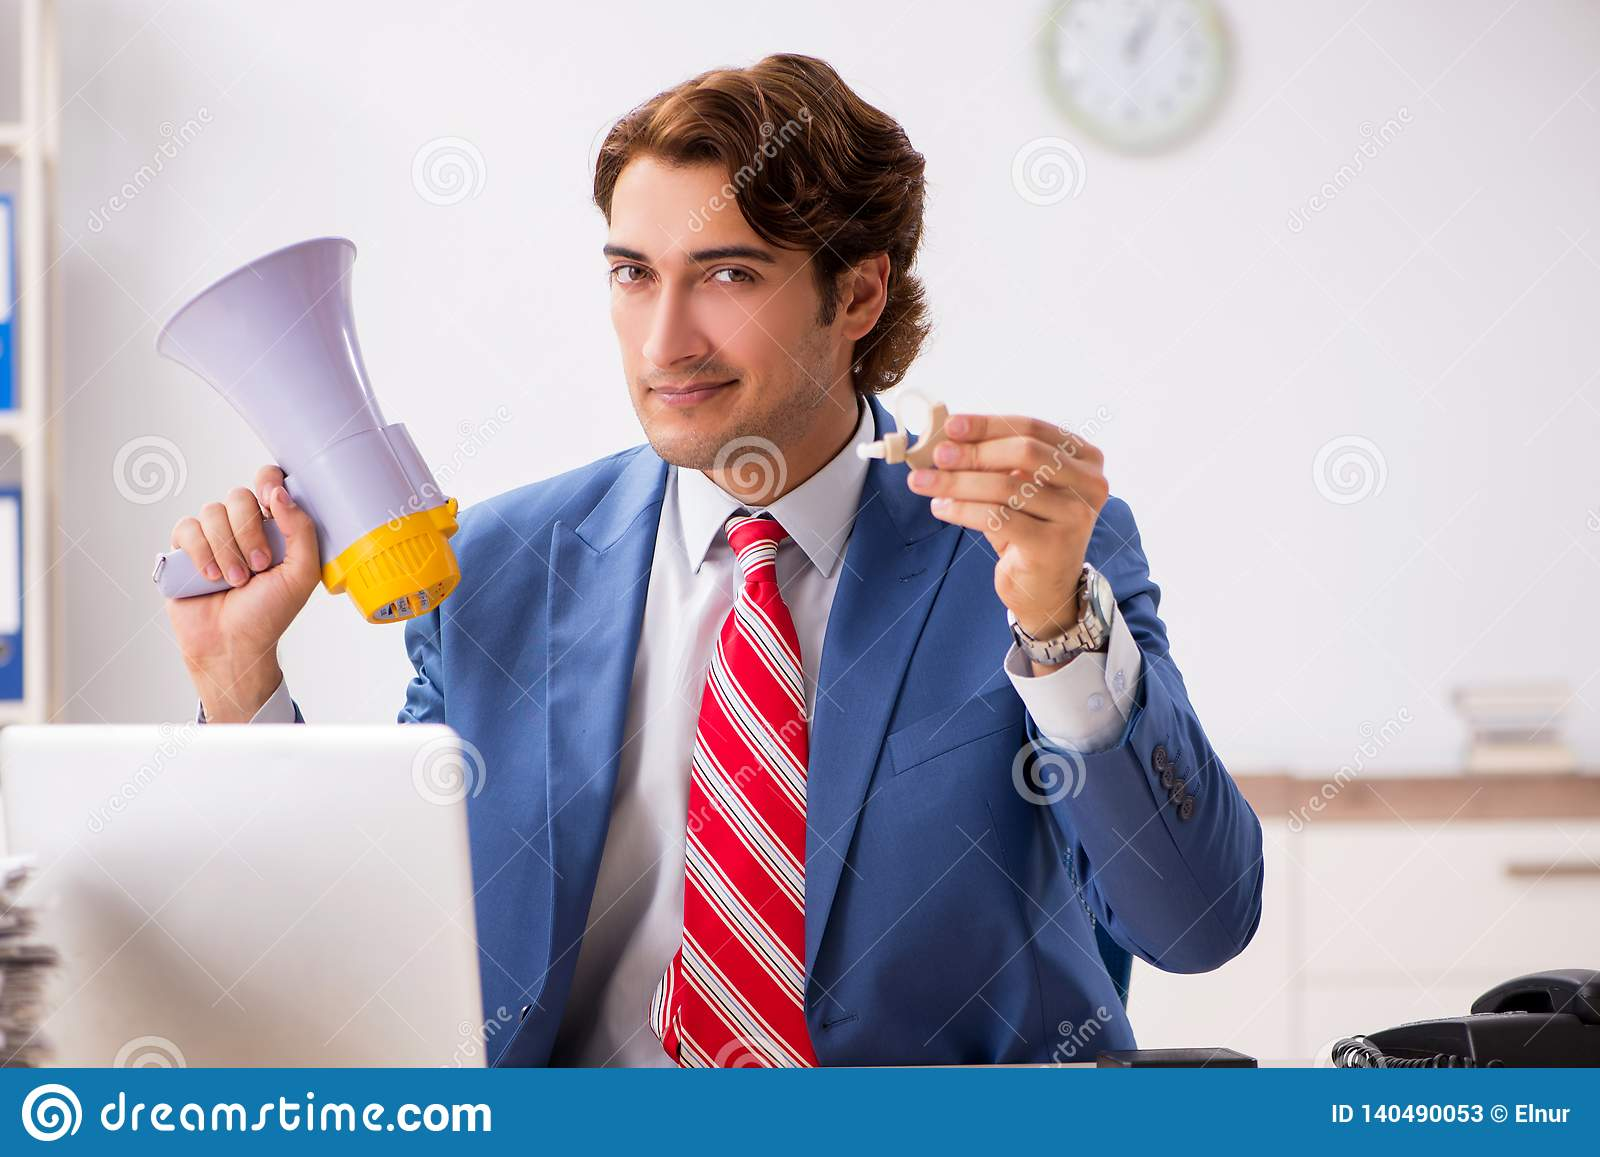 The deaf employee using hearing aid in office